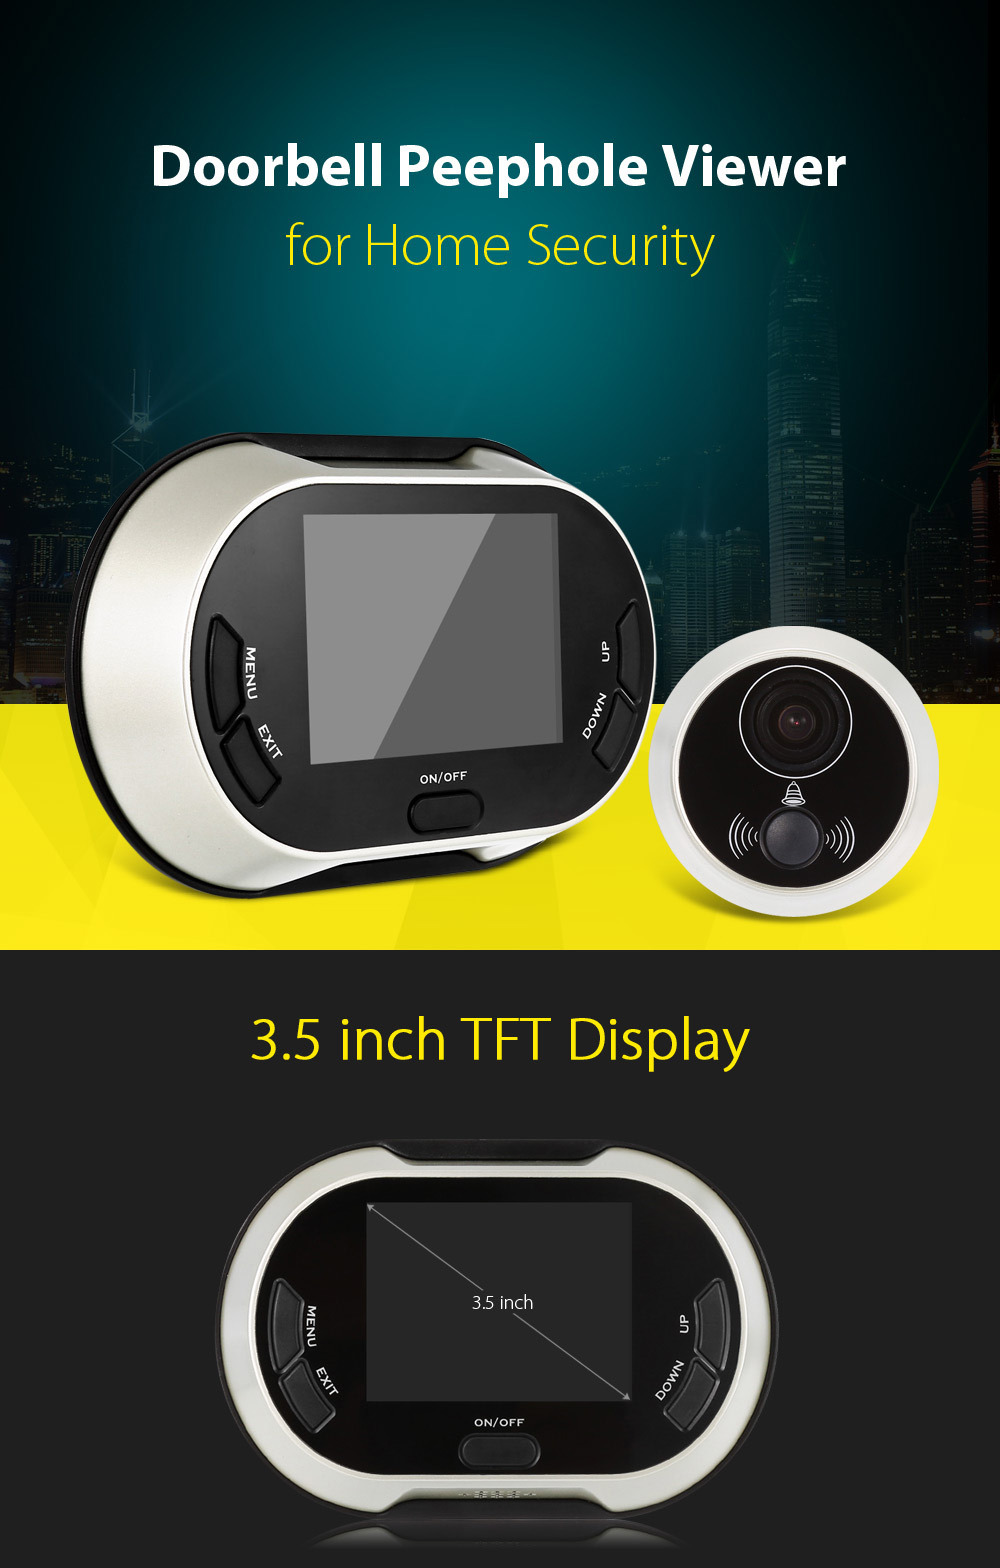 3.5 inch TFT Screen Visual Doorbell Photo Taking Function Night Vision